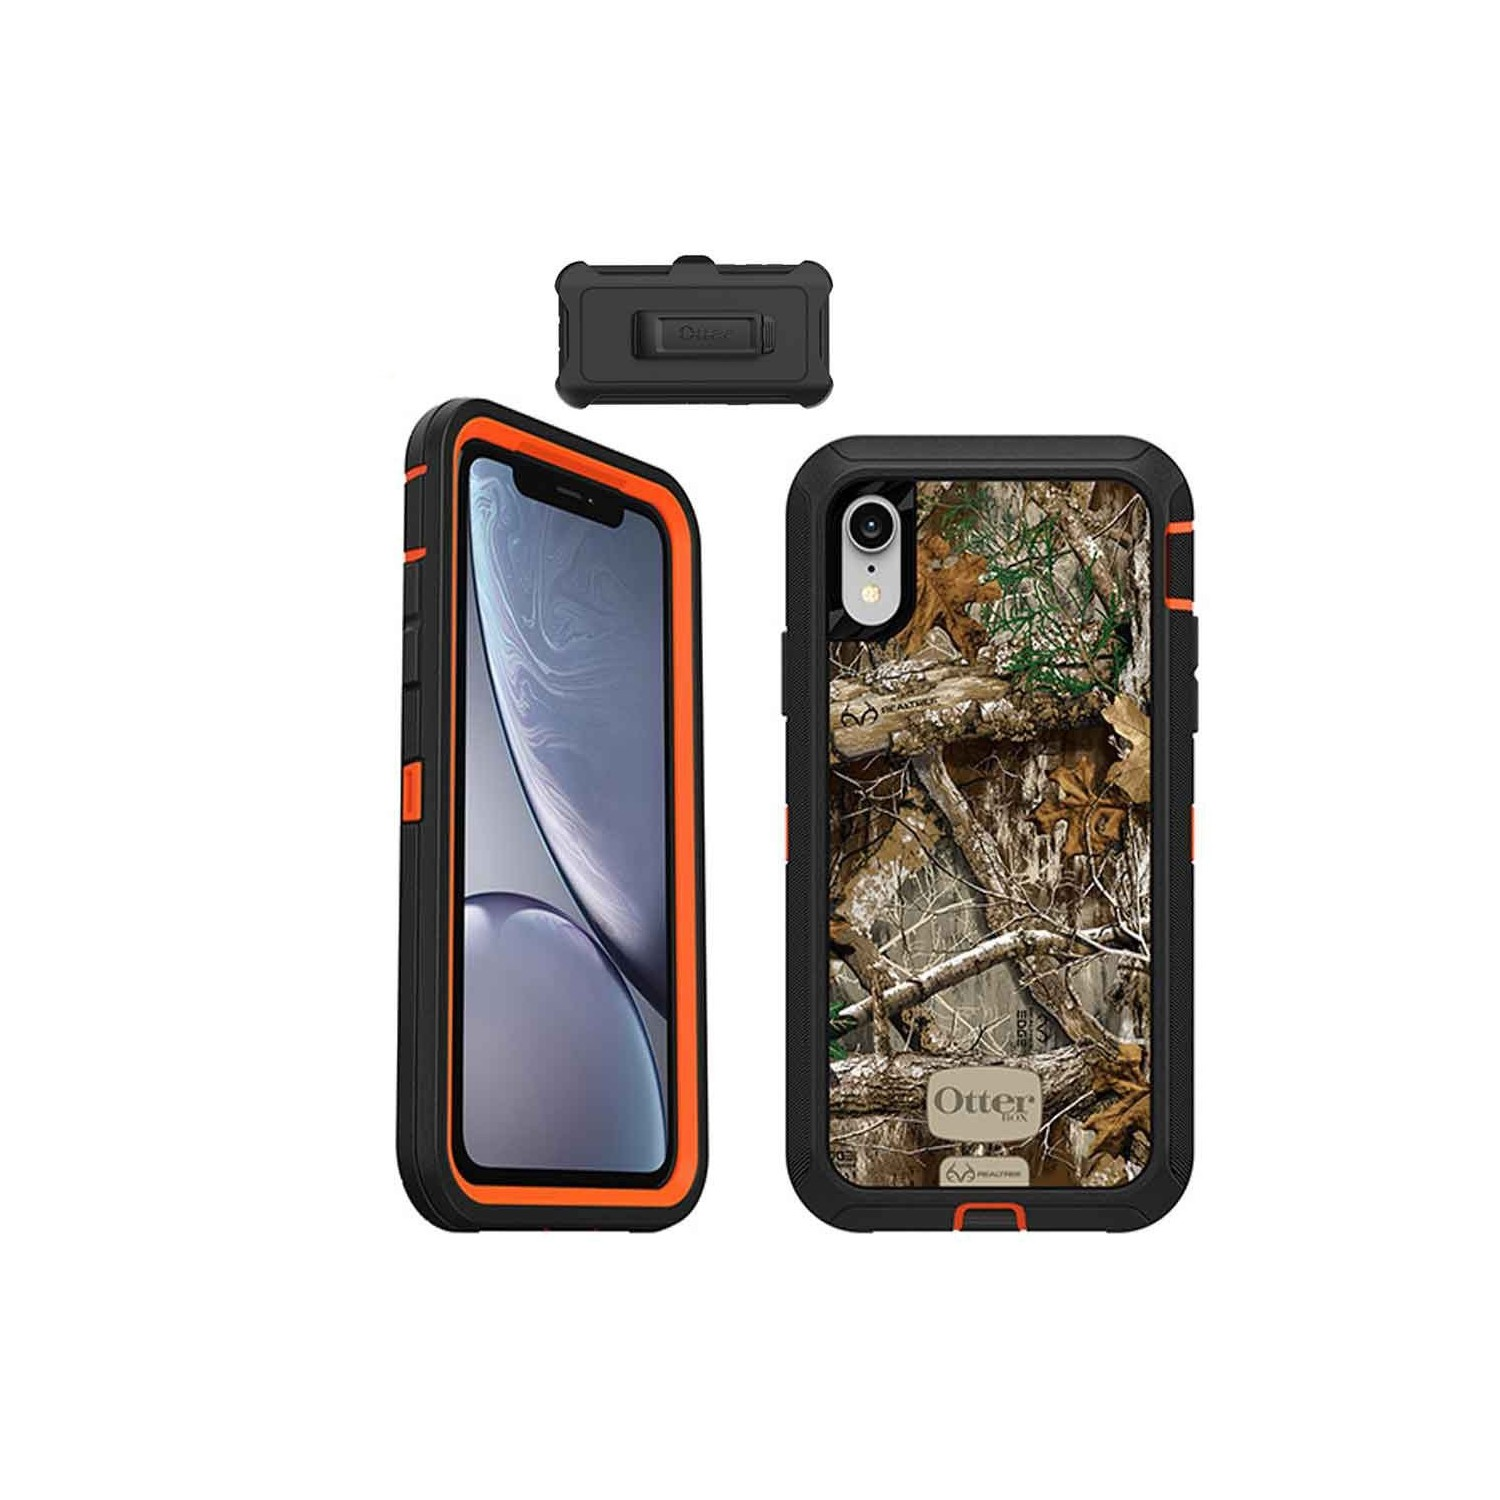 Case - Otterbox Defender for iPhone XR Realtree